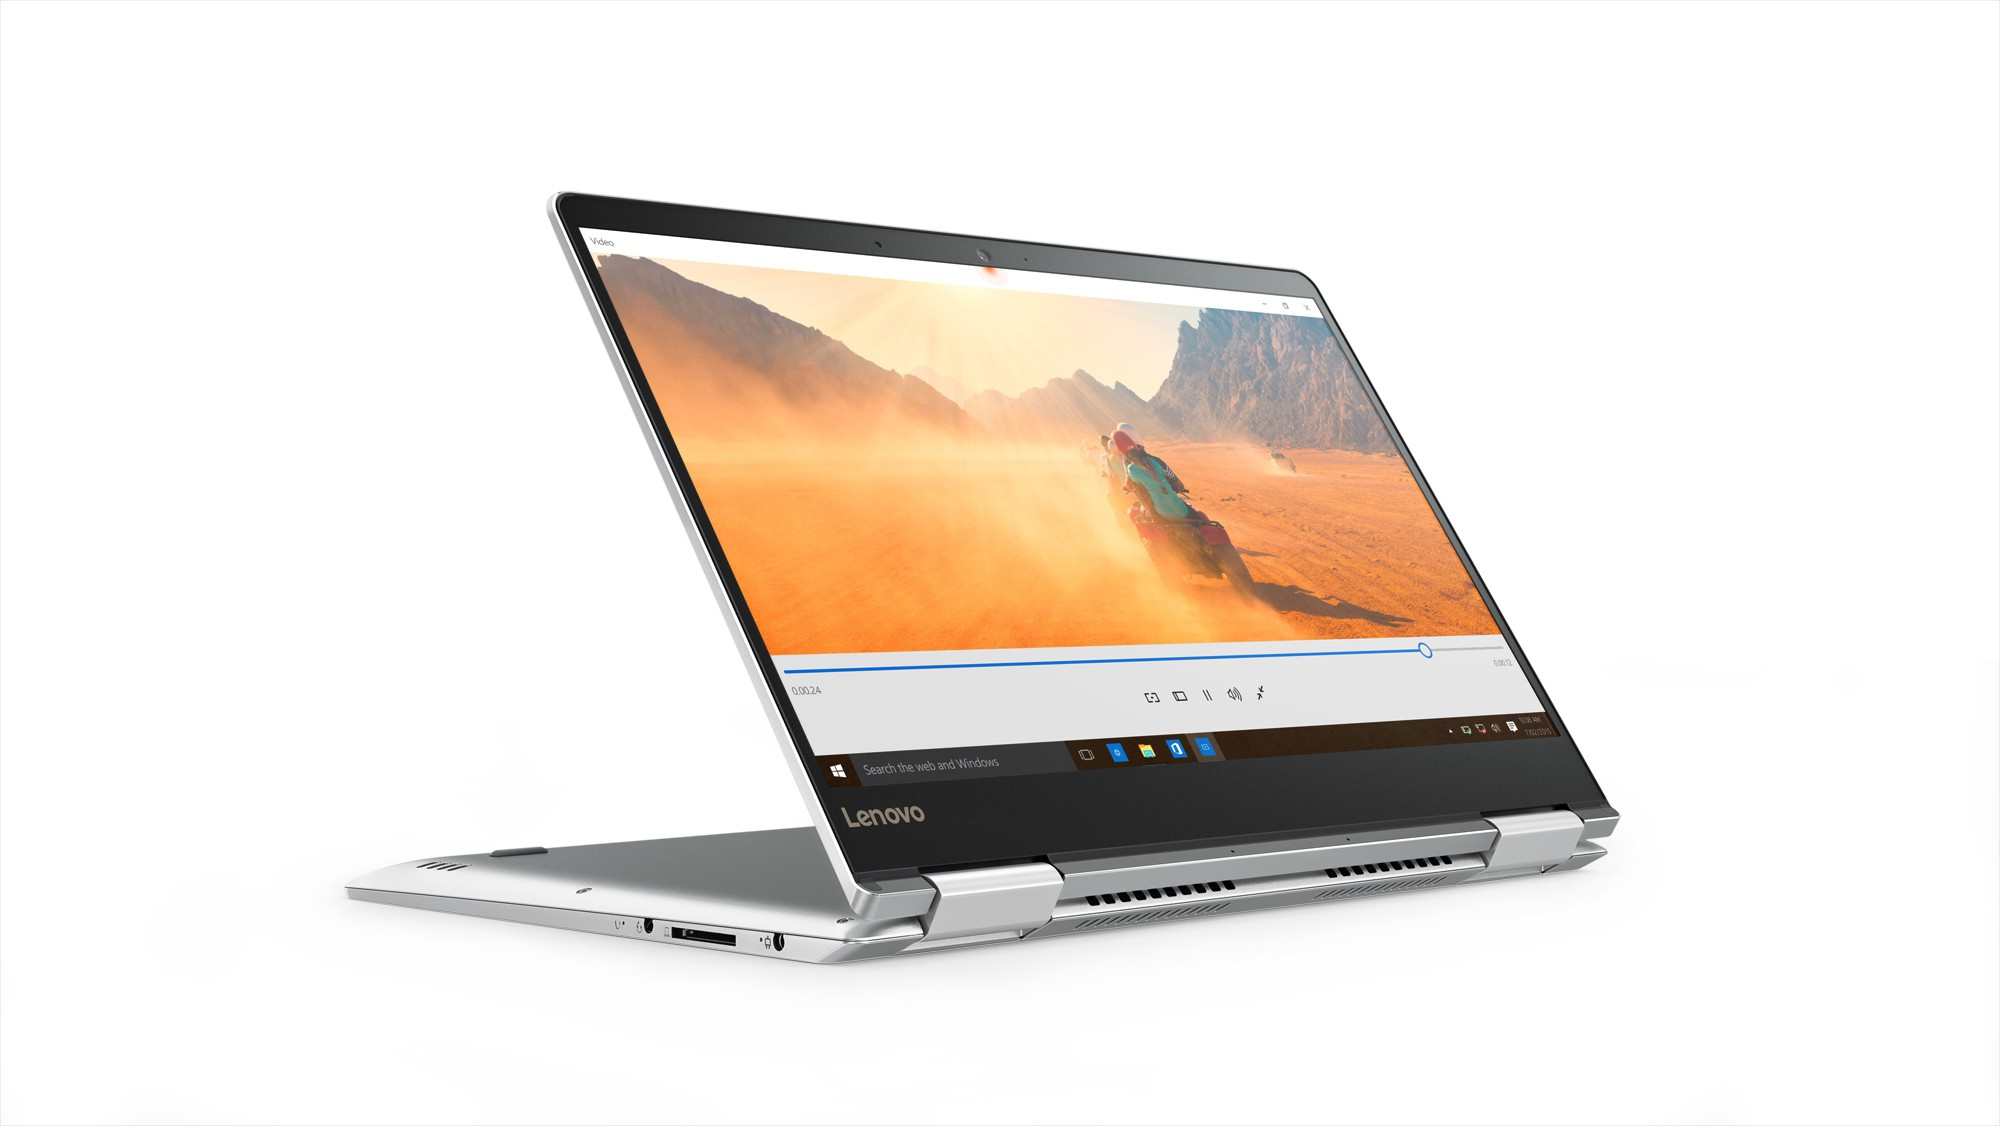 View Lenovo Core i7 7th Gen - (8 GB/256 GB SSD/Windows 10 Home/2 GB Graphics) Yoga 710 2 in 1 Laptop(14 inch, SIlver, 1.6 kg) Laptop